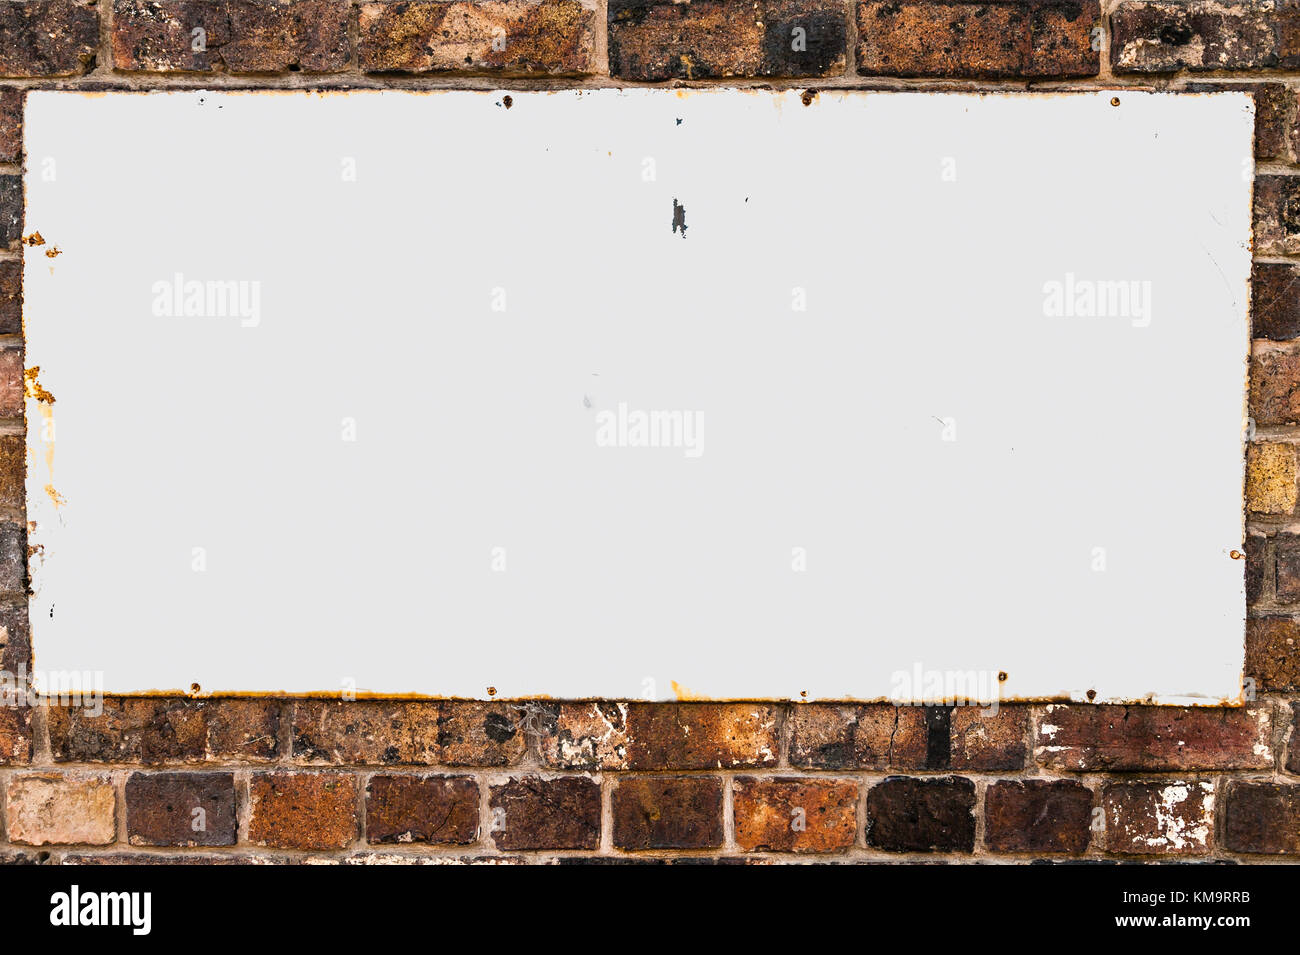 Vintage blank  white metal advertisement hoarding set in a oblong shape screwed to a weathered wall background. - Stock Image